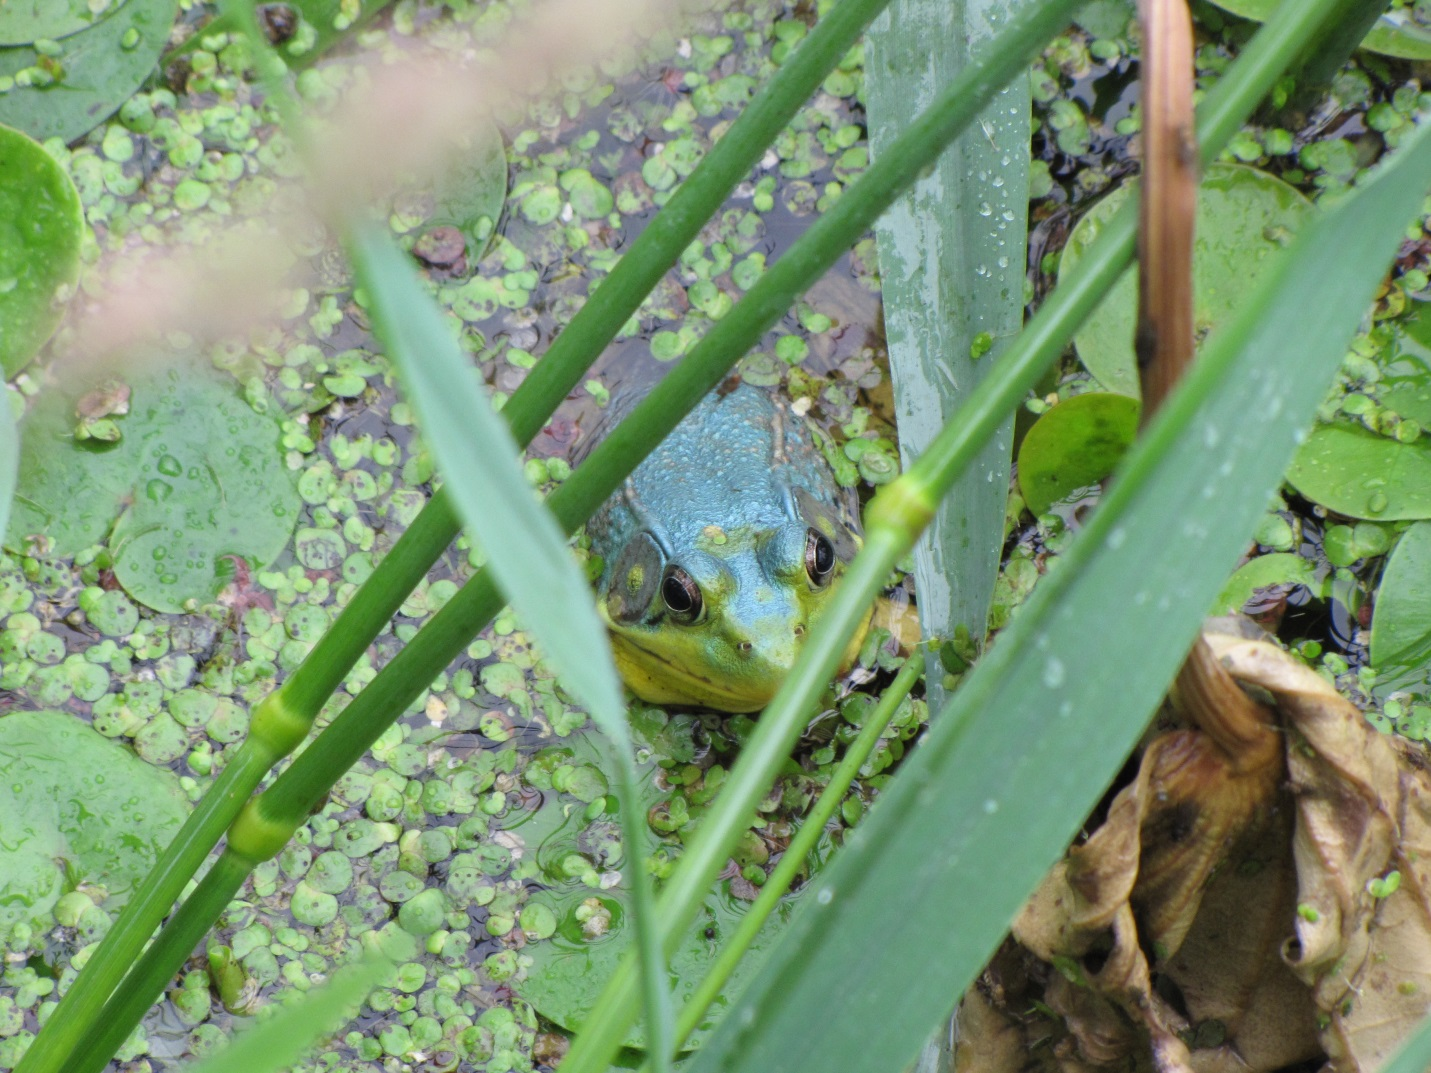 Blue-coloured Green frog (Lithobates clamitans) in Rondeau Bay, hiding in the weeds